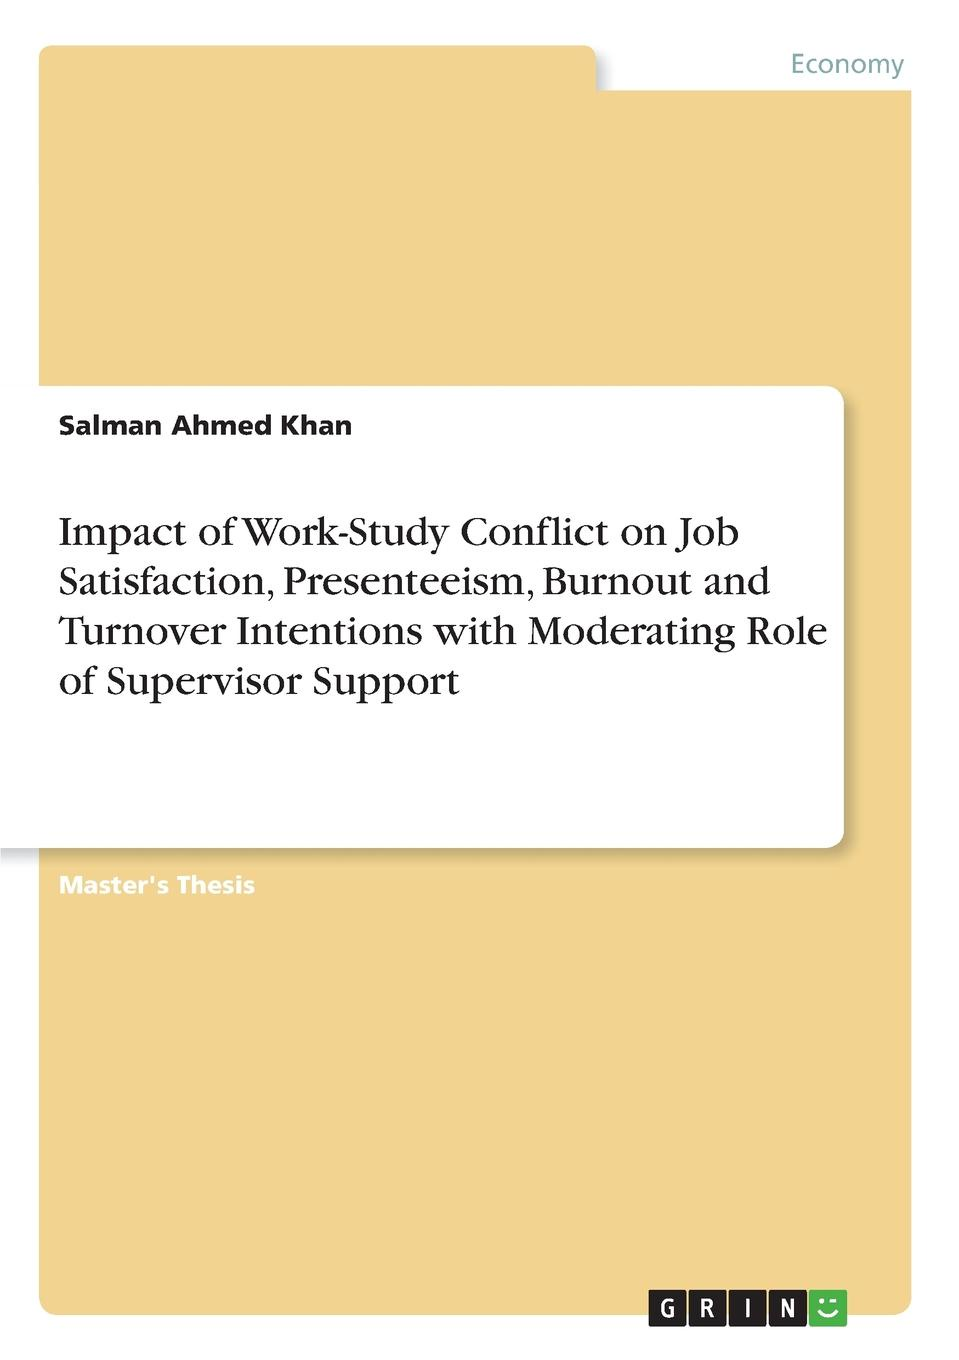 Salman Ahmed Khan Impact of Work-Study Conflict on Job Satisfaction, Presenteeism, Burnout and Turnover Intentions with Moderating Role of Supervisor Support the relationship between communication satisfaction and teamworking